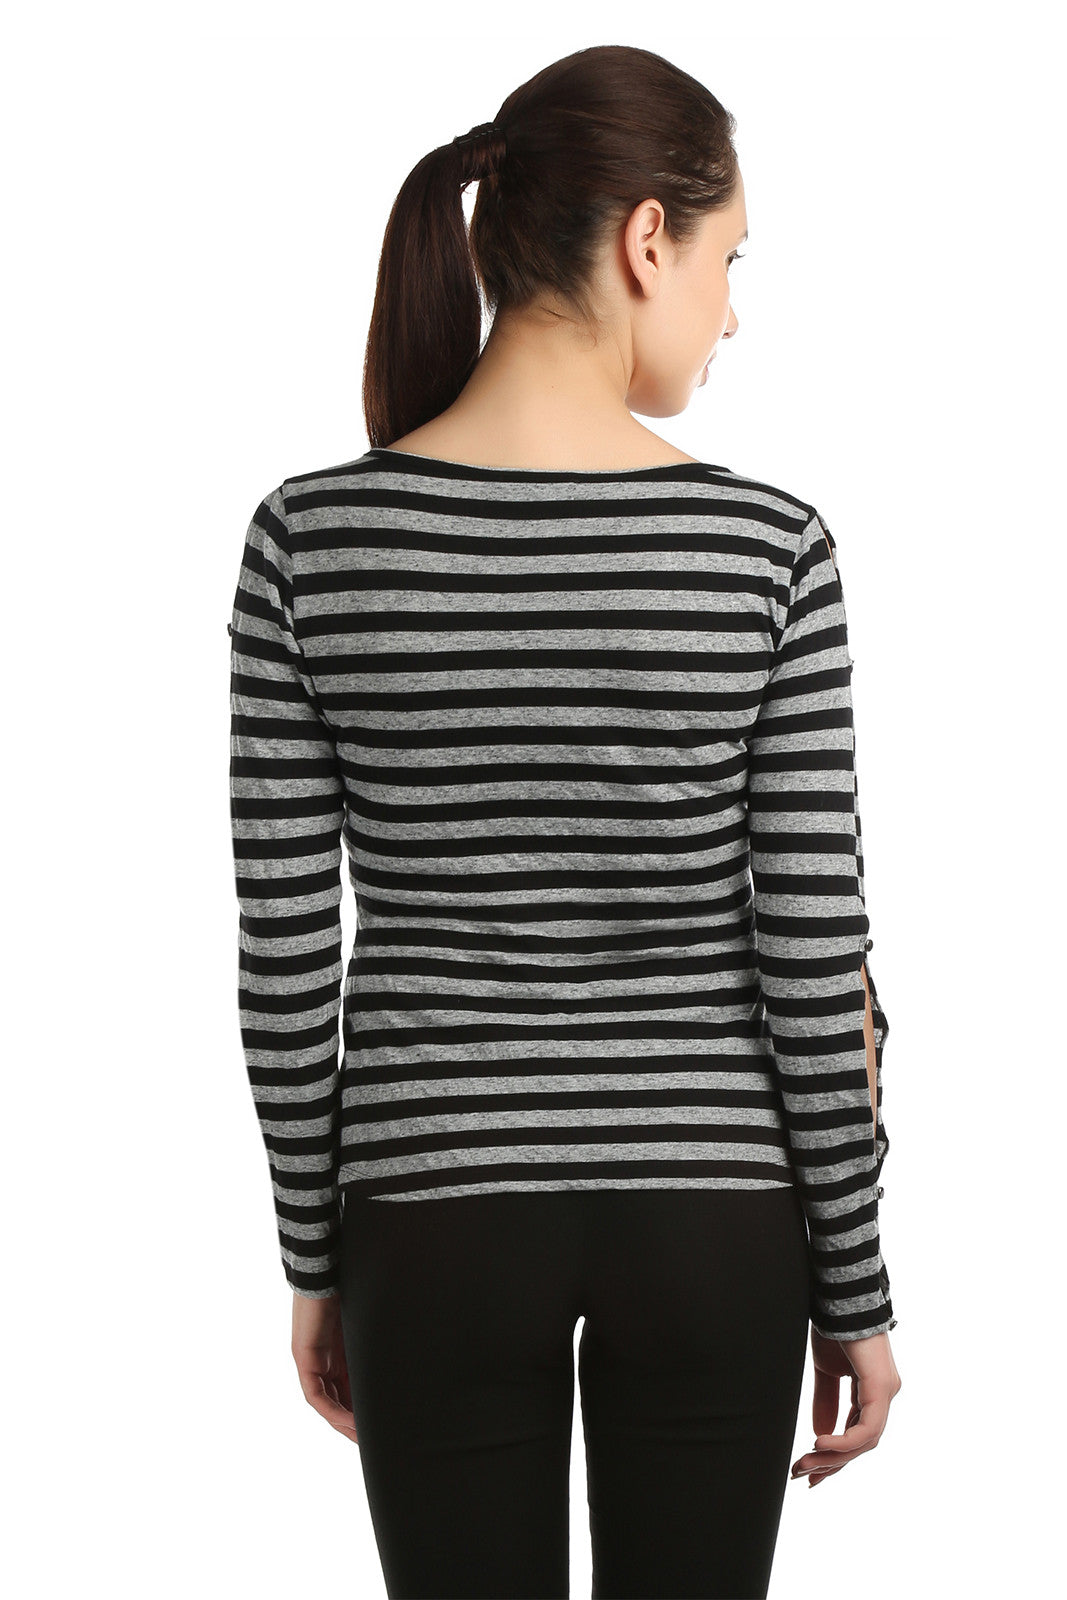 Joana Grey and Black T-shirt - ETHER  - 3